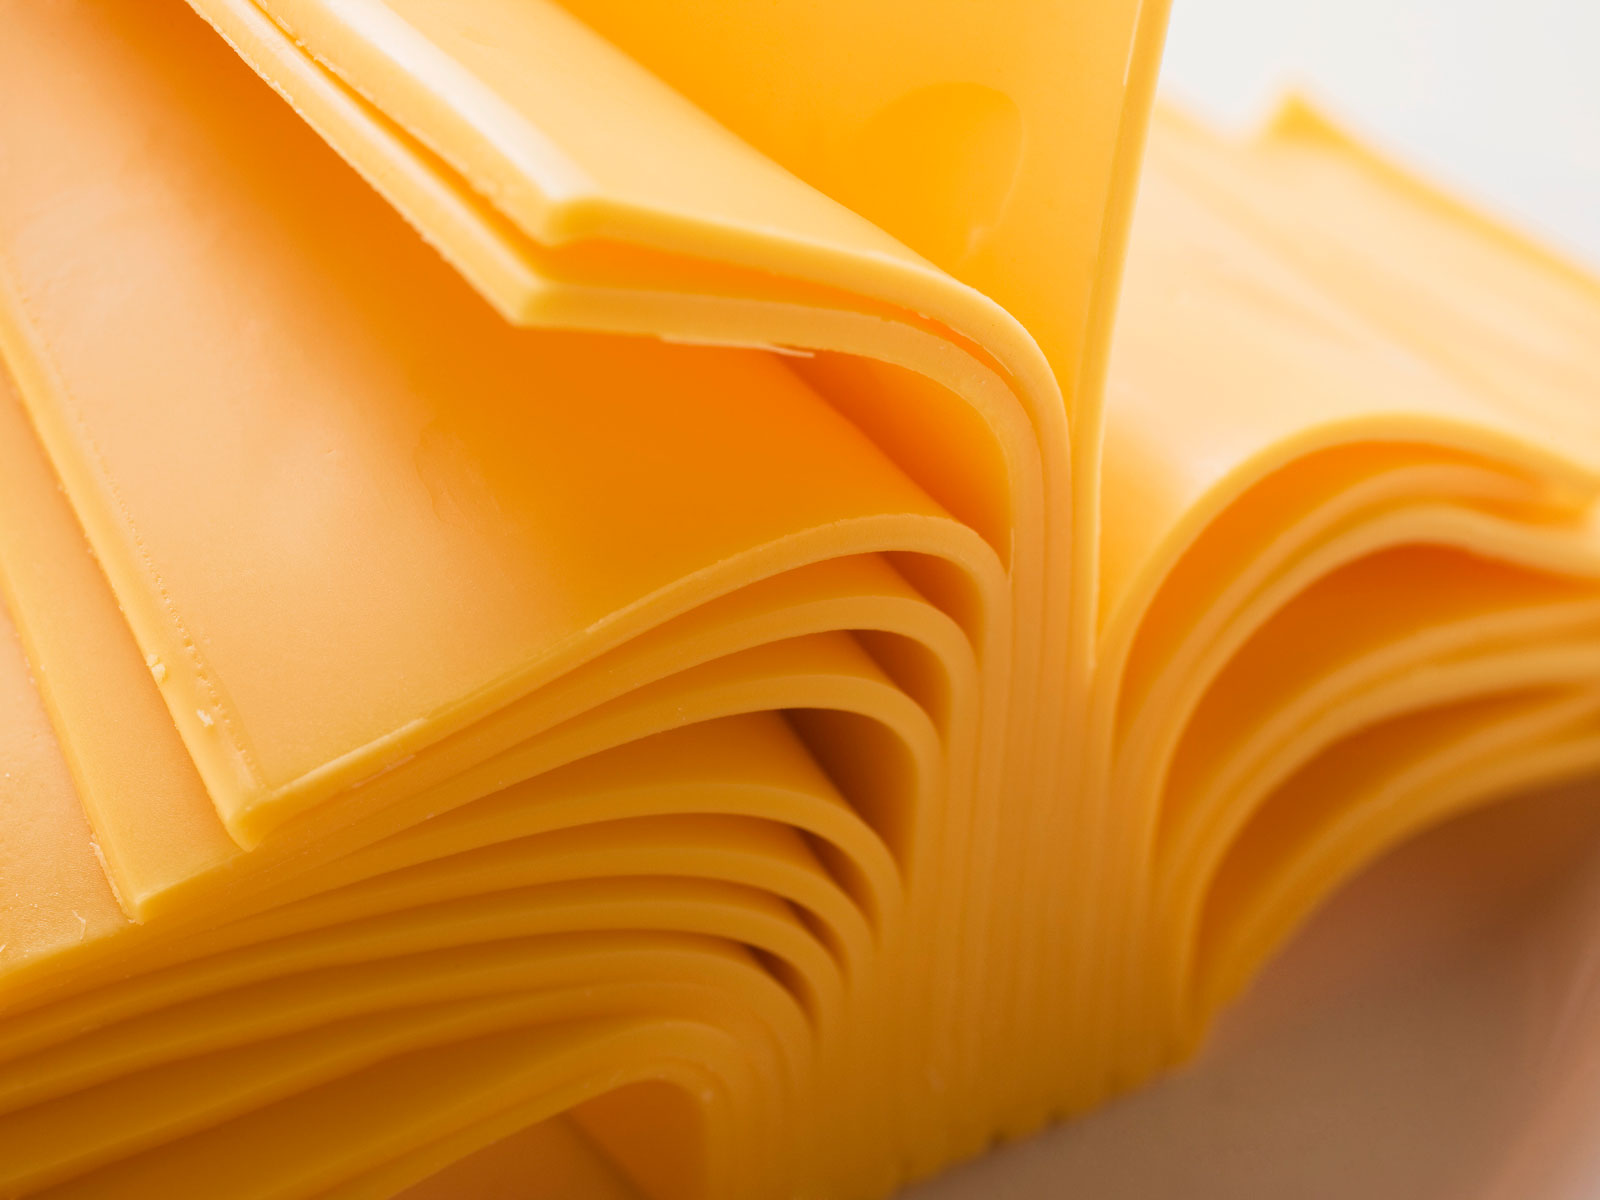 Cheese Slices Can Be Dusted for Fingerprints, Texas Police Discover